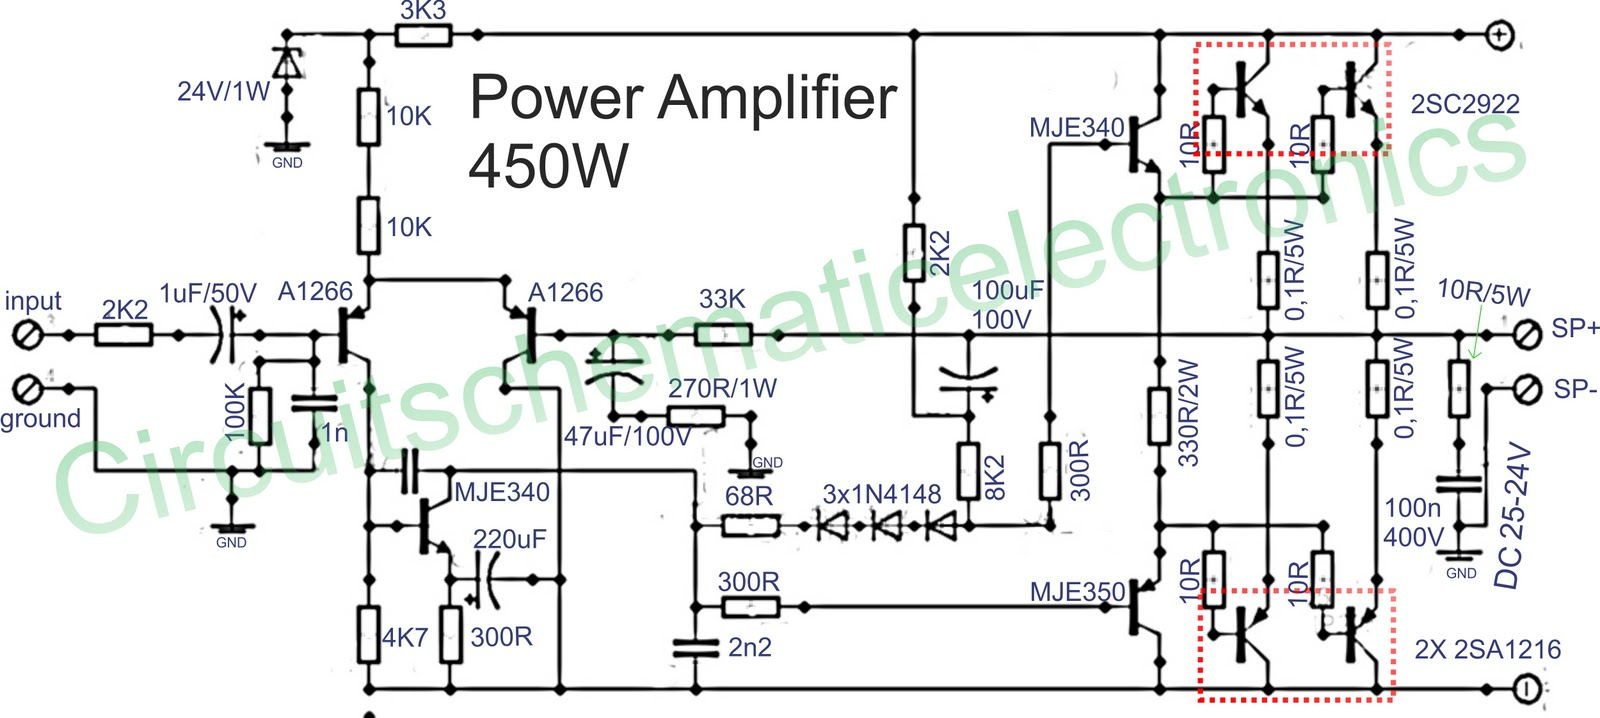 Amplifier Schematics Auto Electrical Wiring Diagram For Spal 30102120